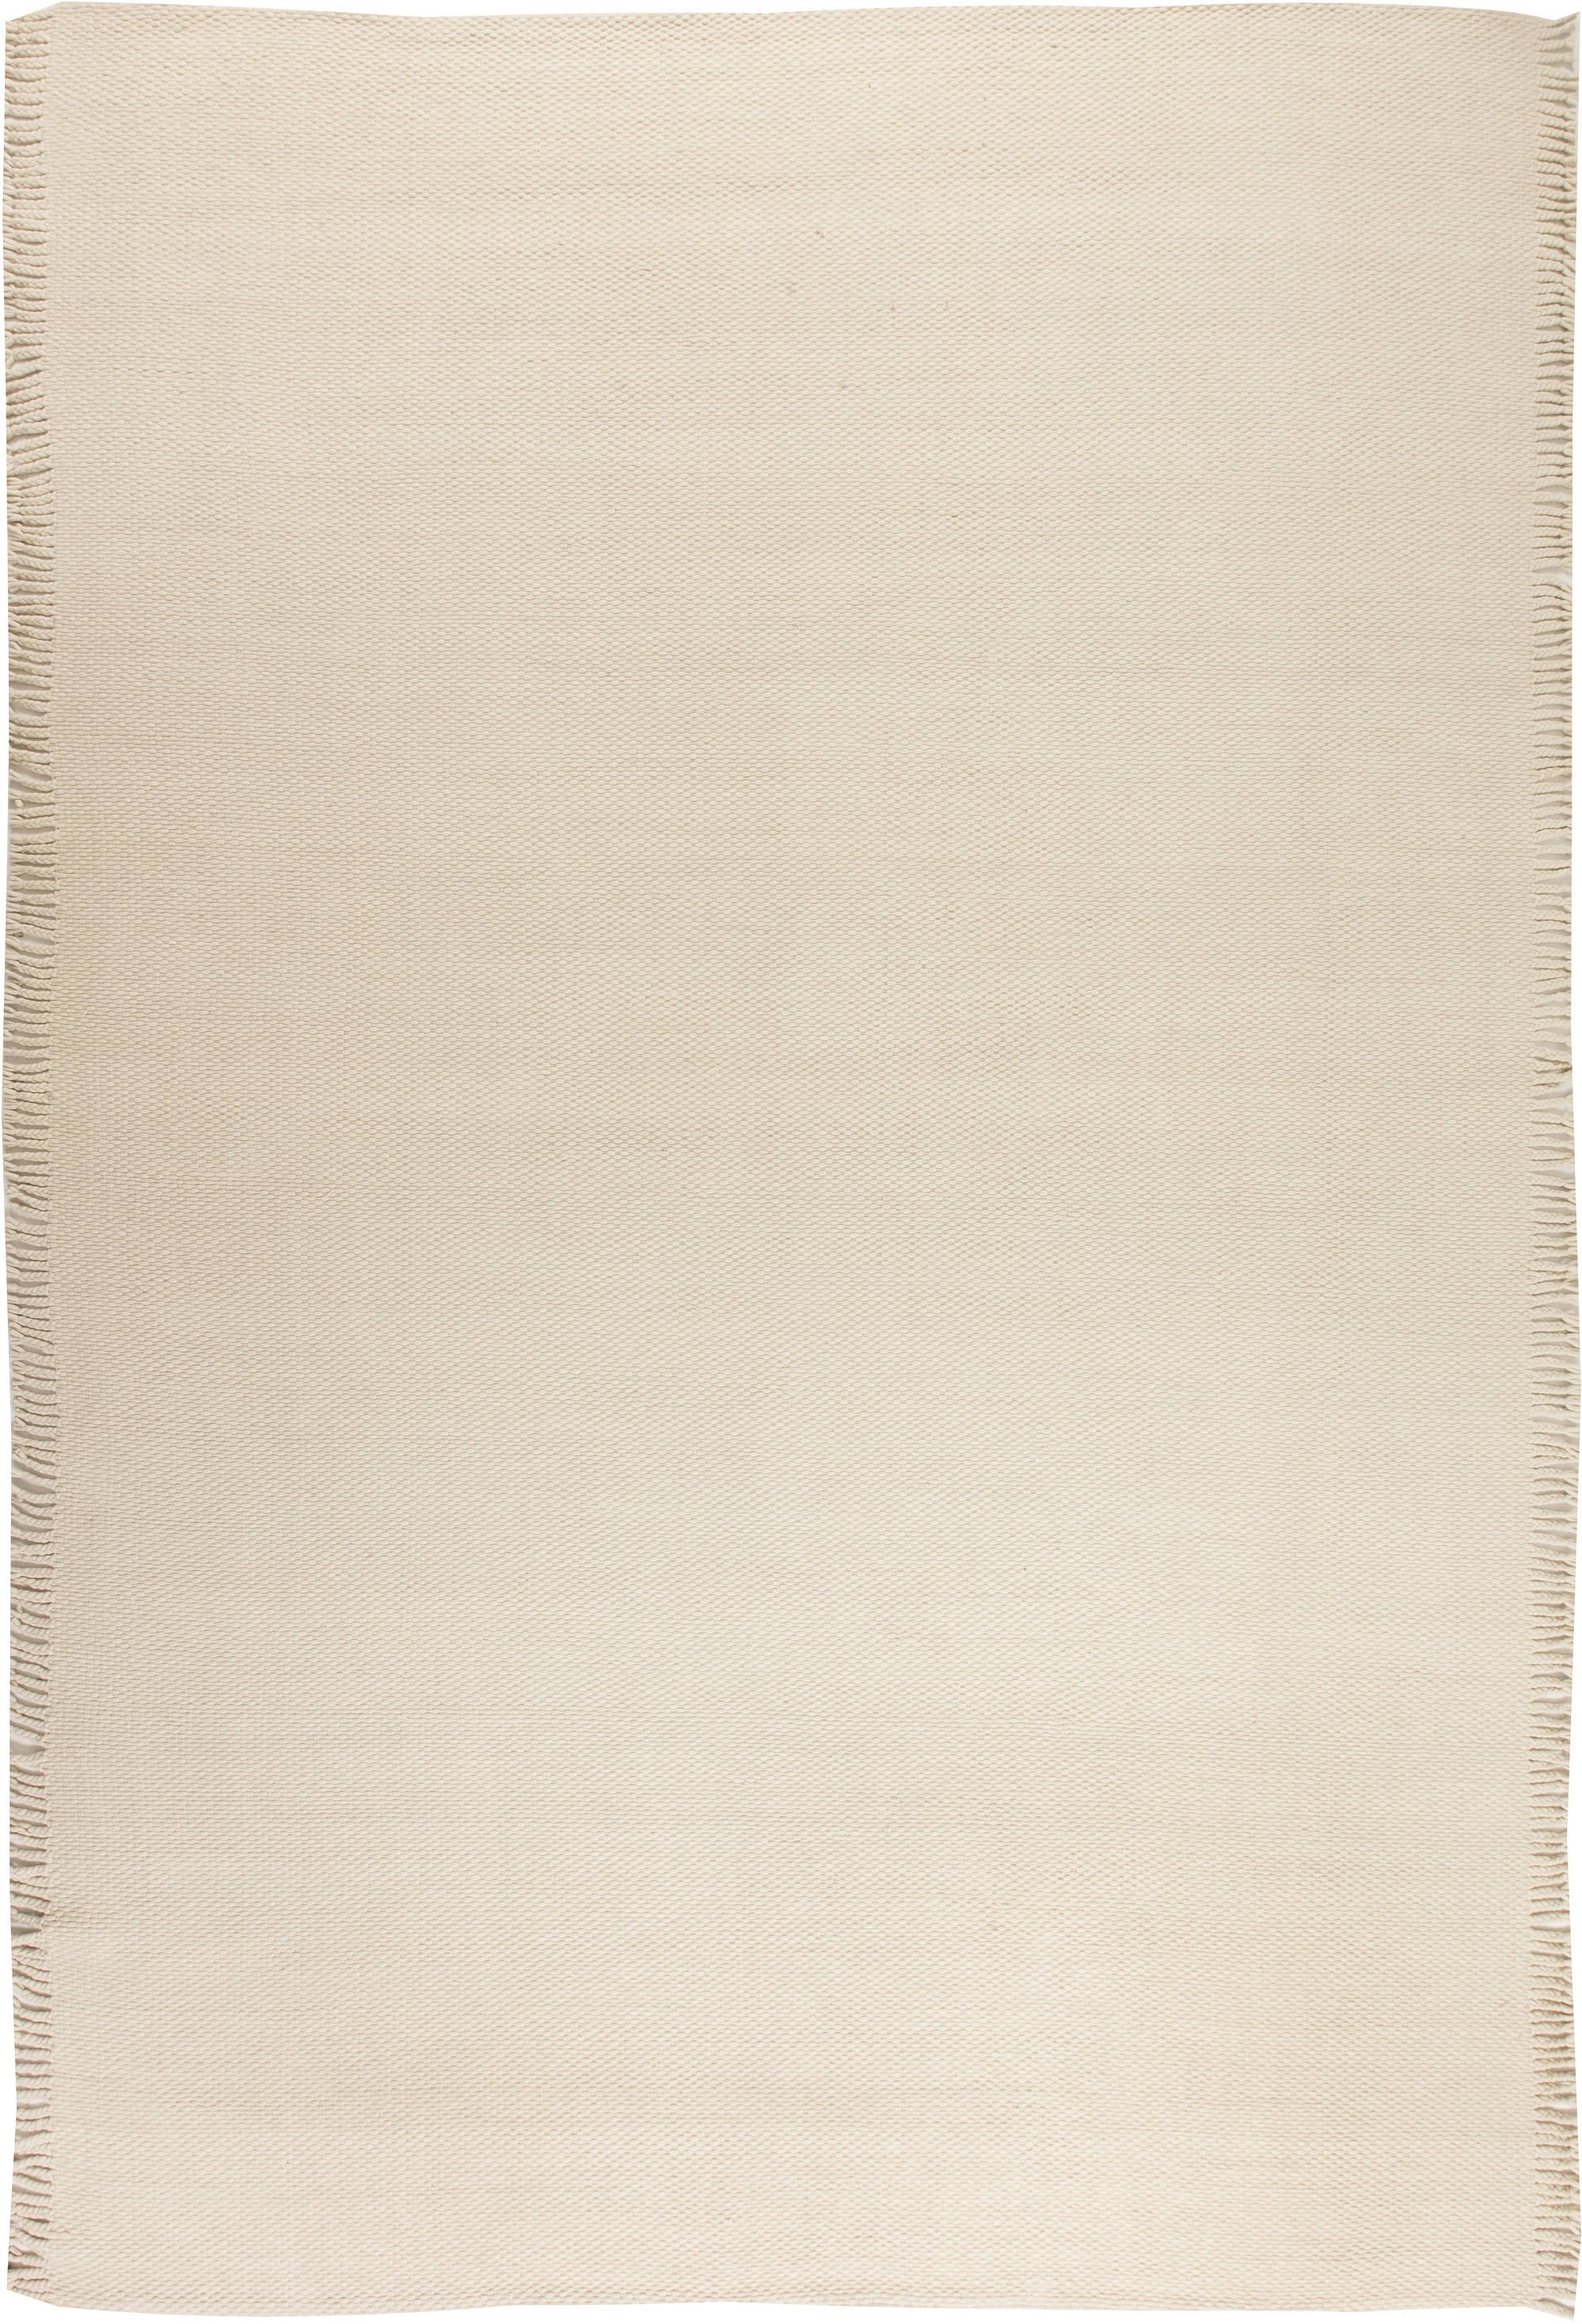 Contemporary Flat weave Area Rug N11707